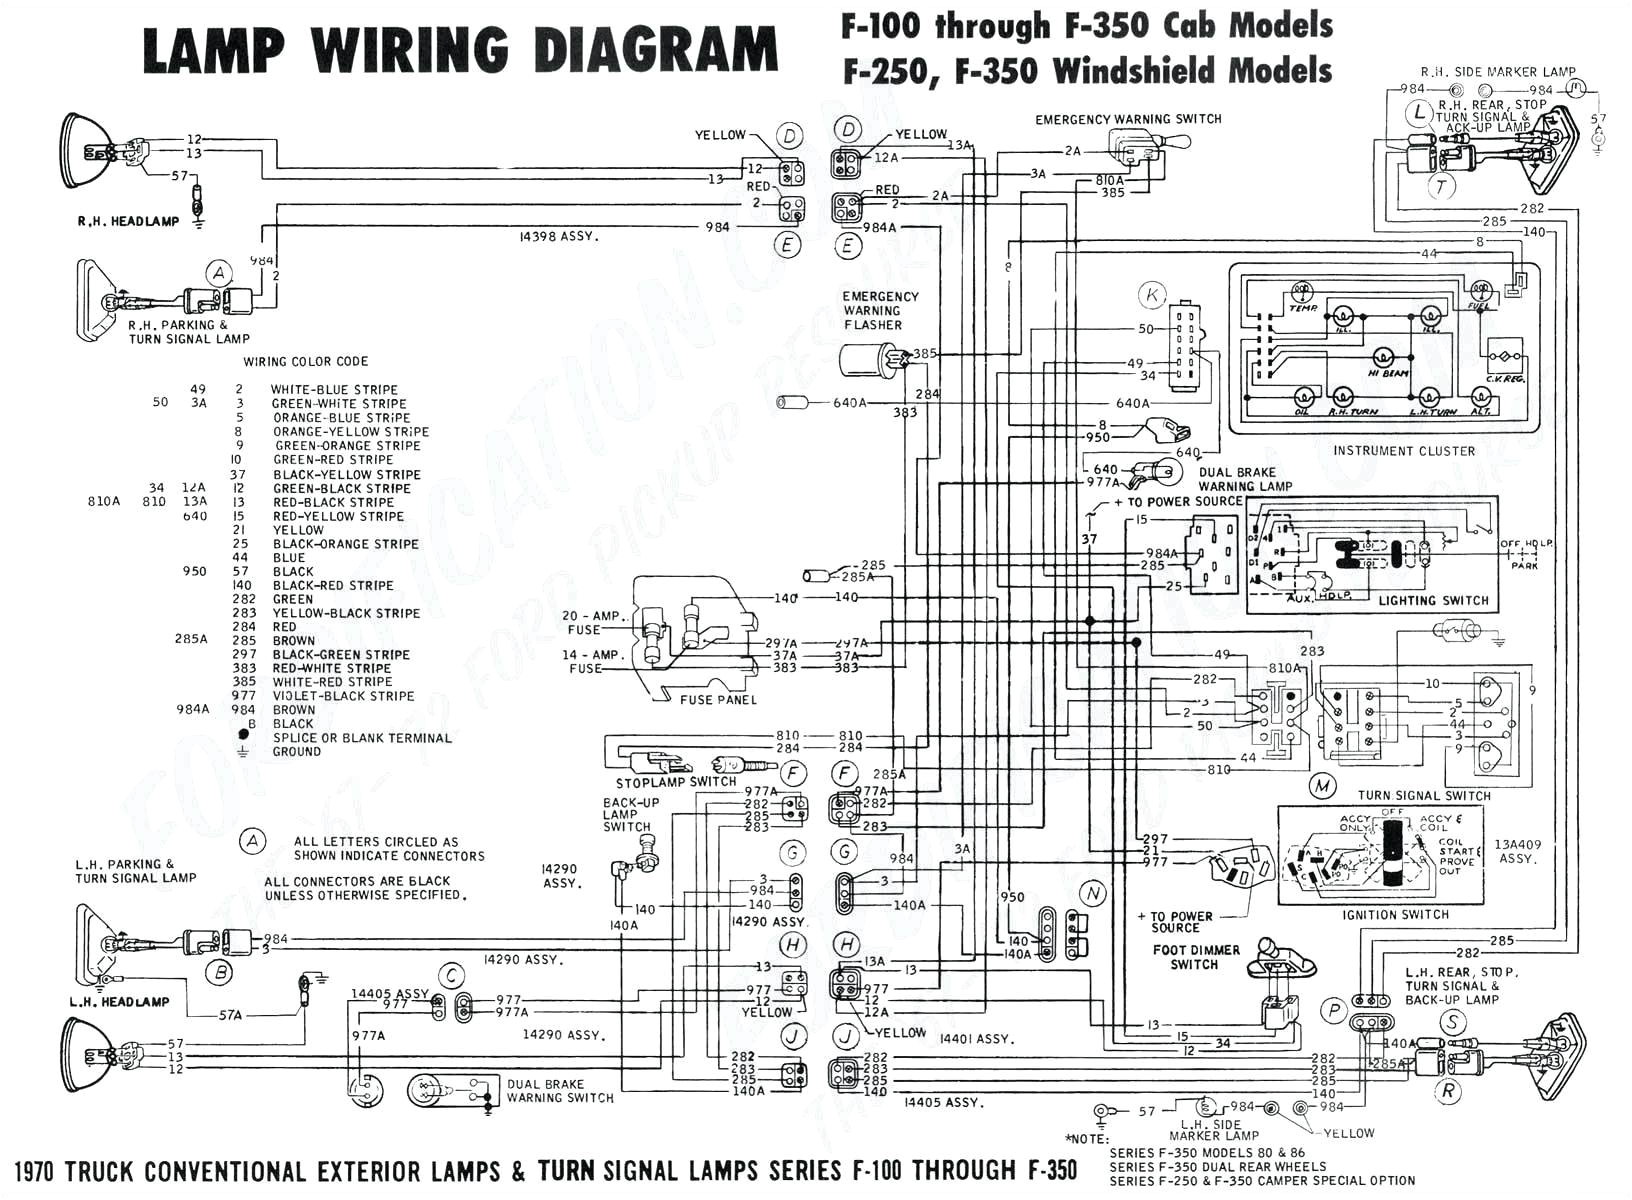 Kenworth Spare Switch Wiring Diagram 75658 1981 Mack Wiring Diagram Wiring Resources